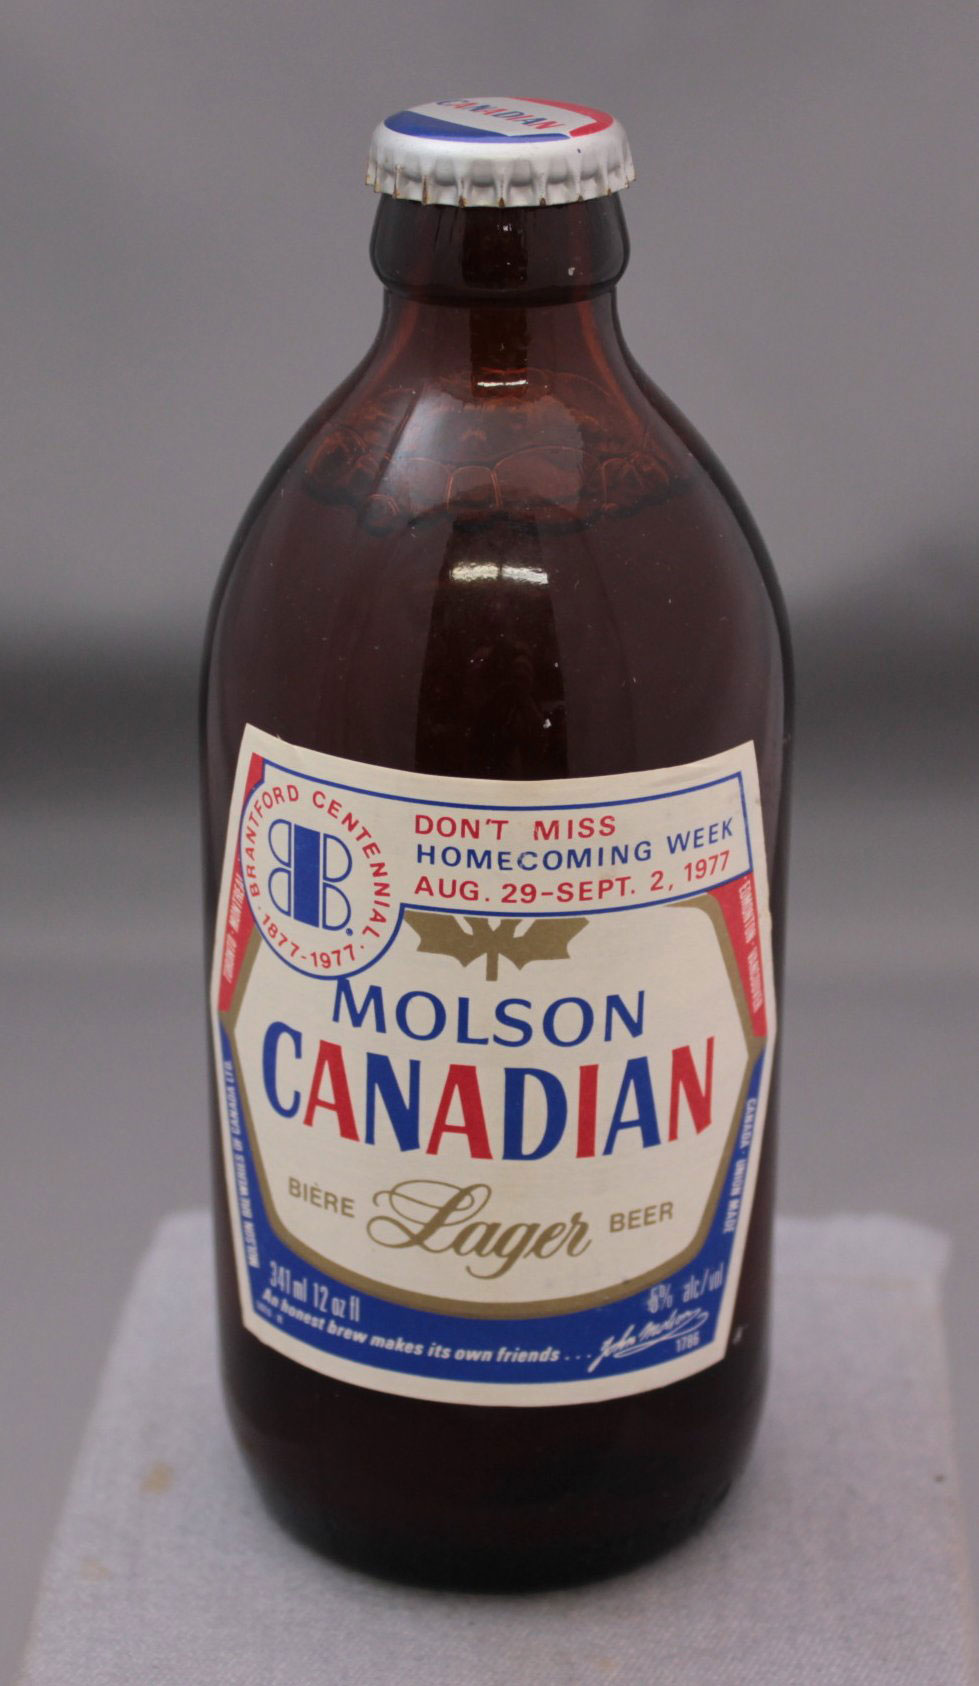 Molson Canadian beer bottle promoting Homecoming Week during the Brantford Centennial.  Image courtesy of the Brant Historical Society